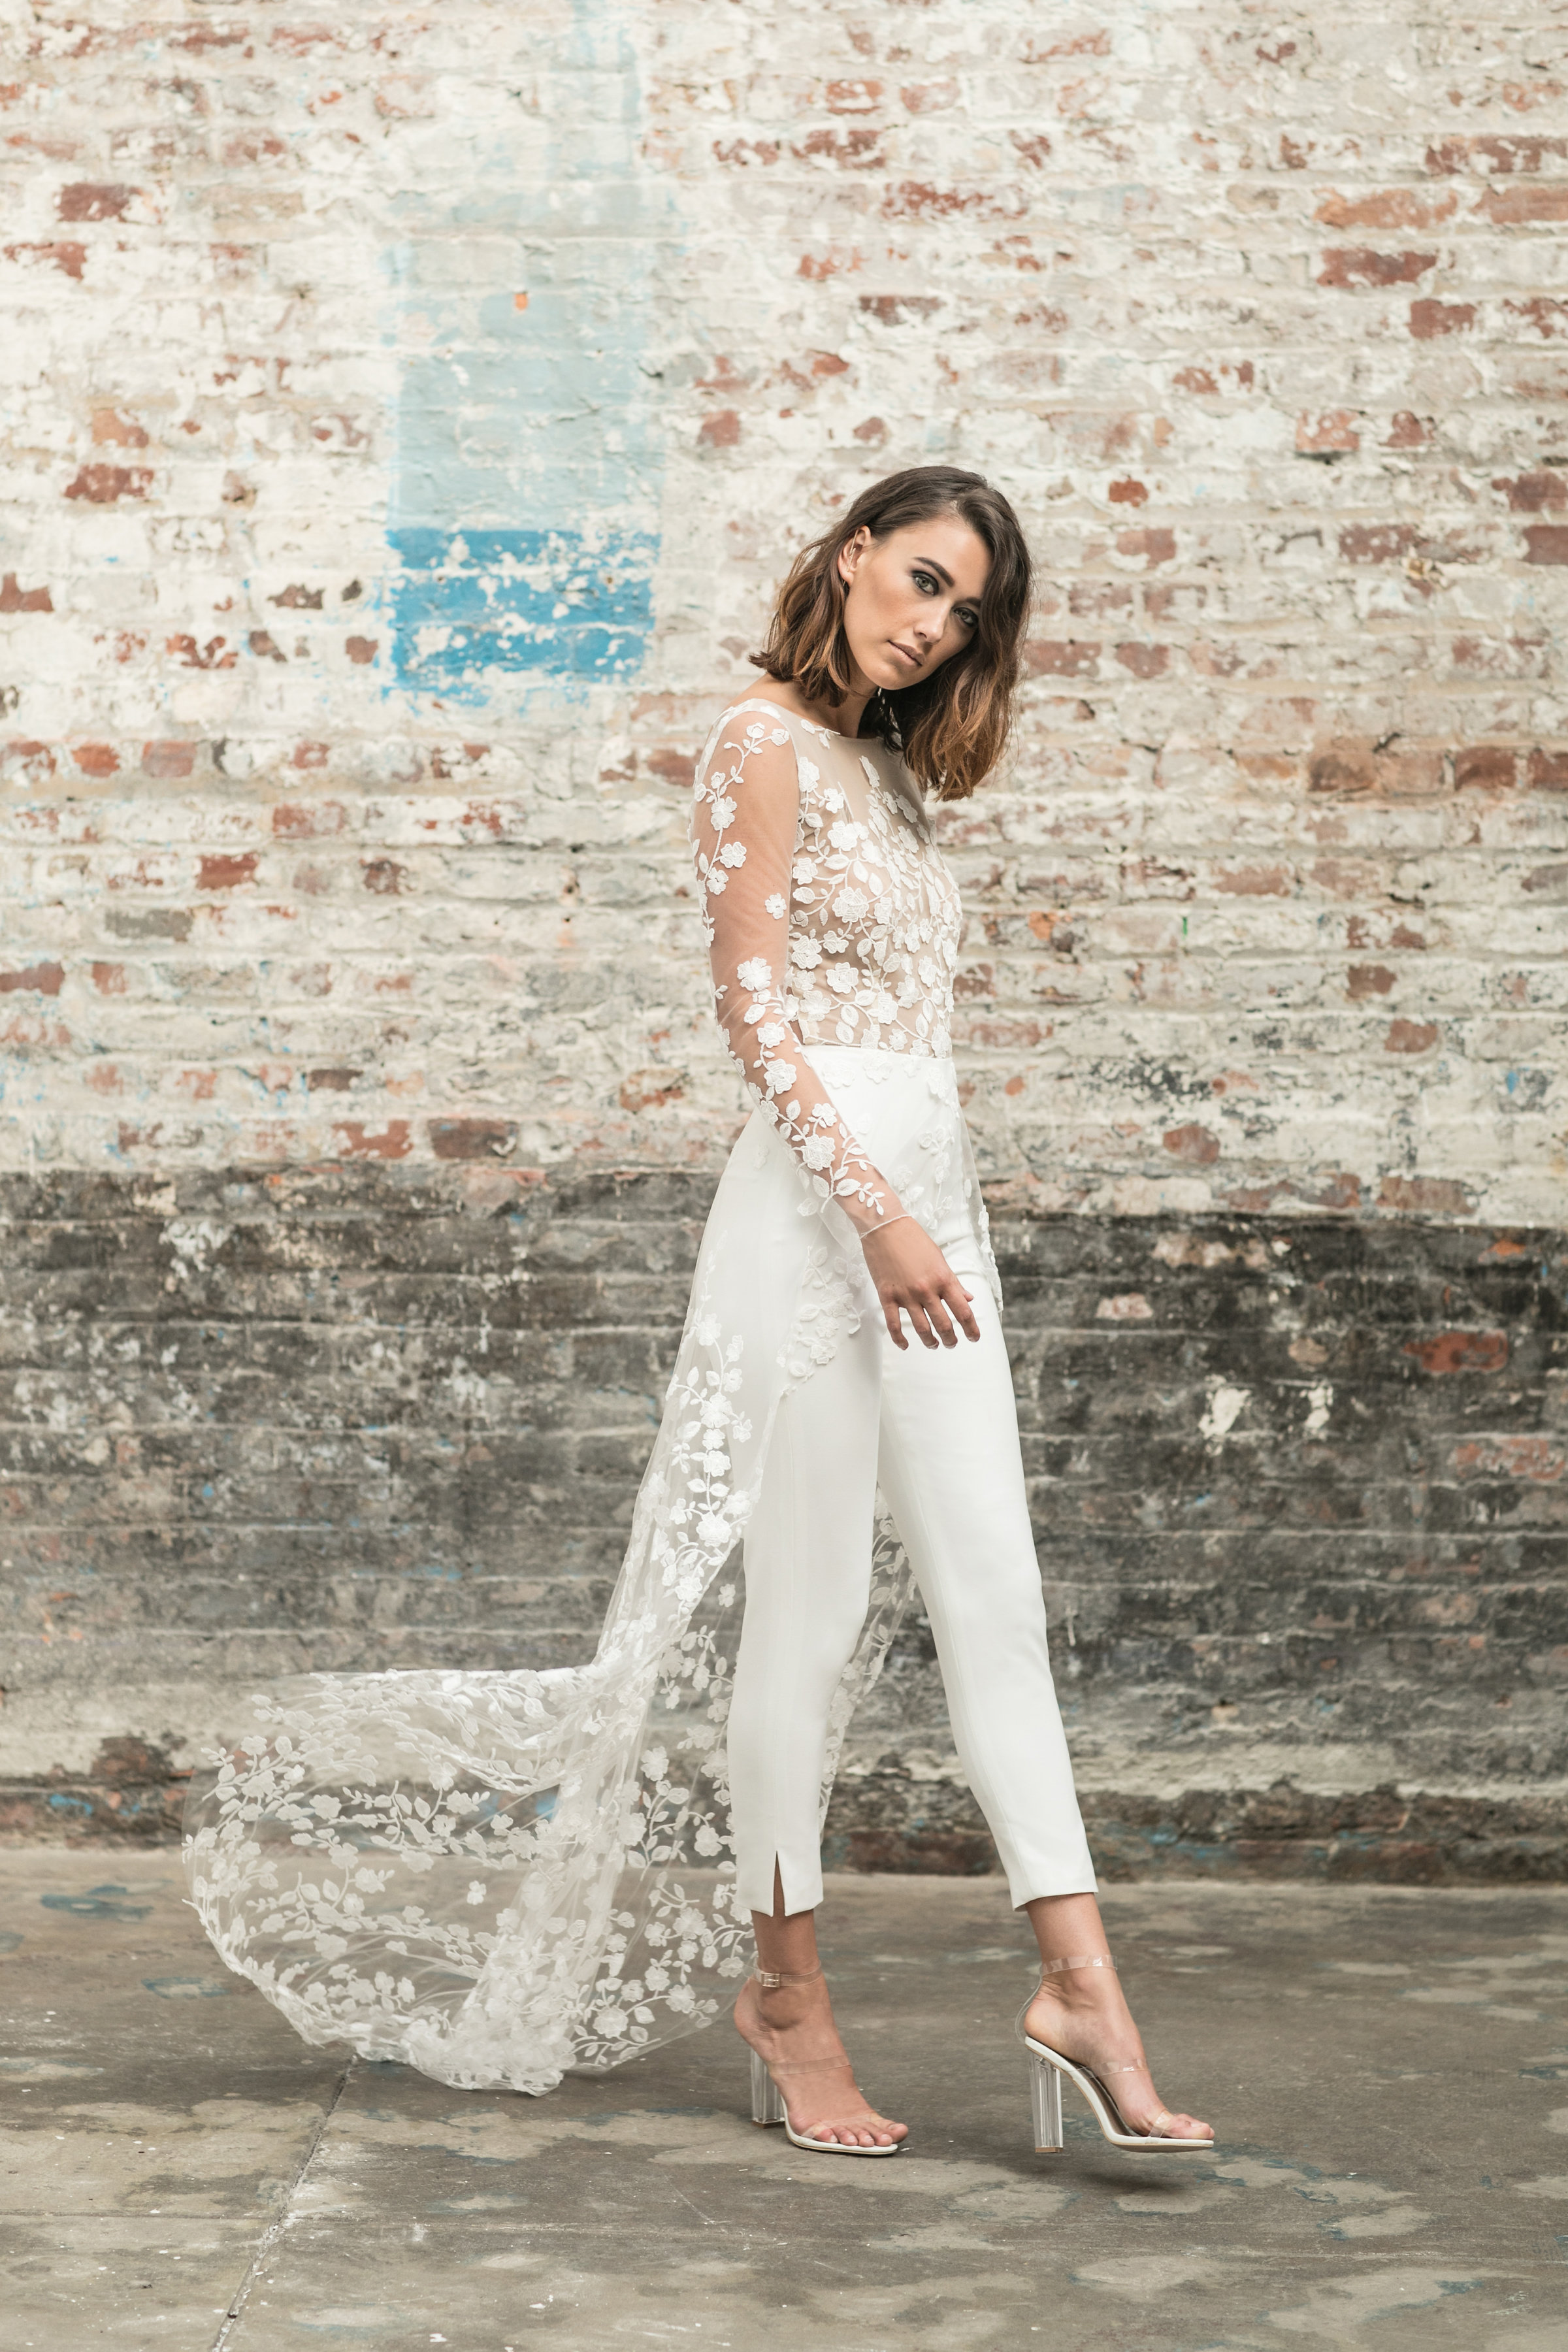 Wedding Dress Trend: Let the Bride Wear the Pants   California ...